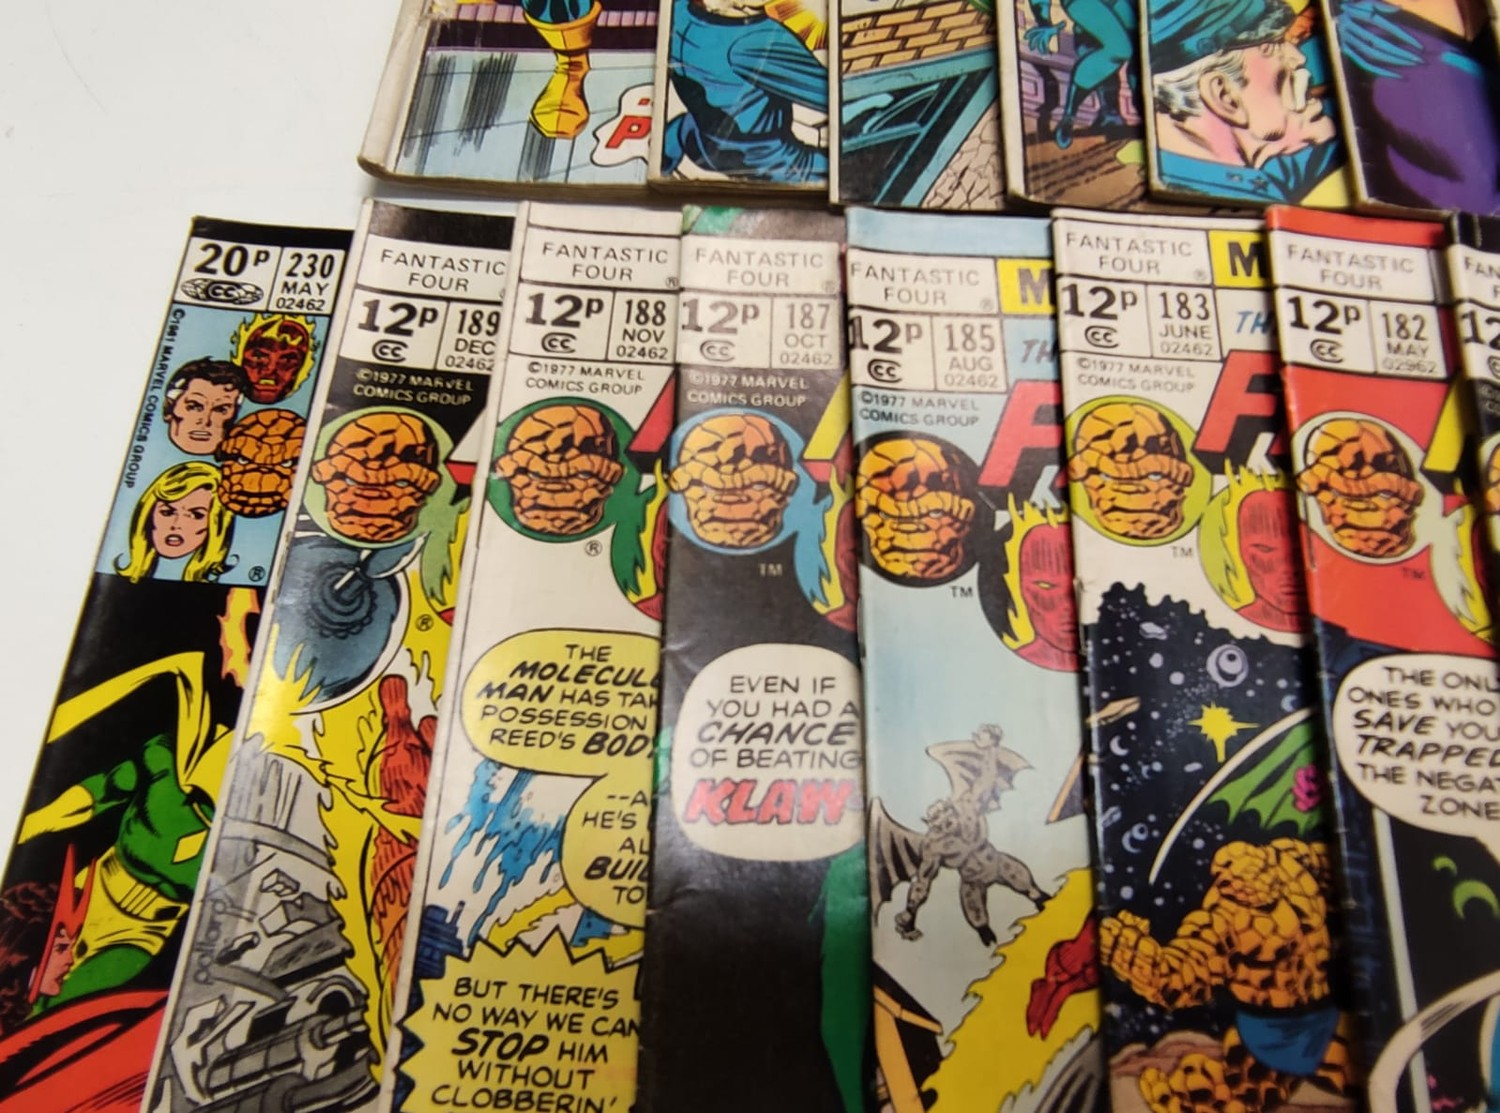 30x Marvel Fantastic four mid 1970s editions. Used, in good condition. - Image 7 of 17